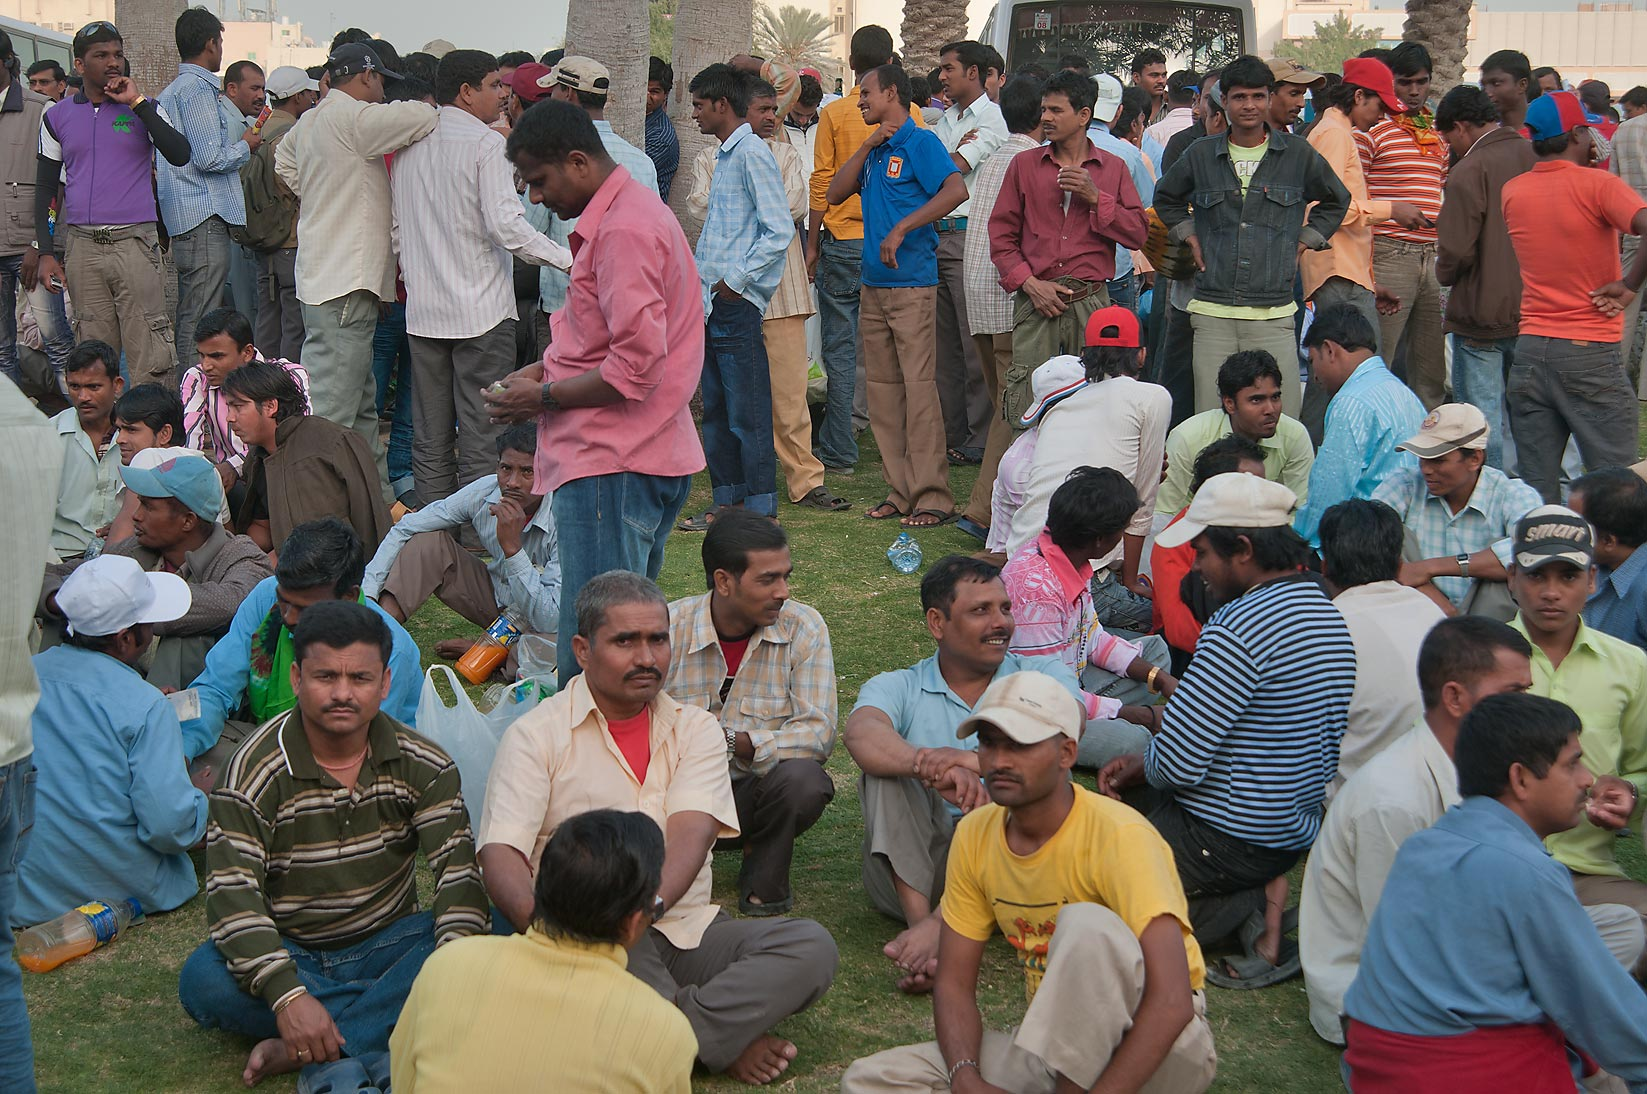 Workers gathering on Friday evening on a lawn...Al Ghanim) Bus Station. Doha, Qatar